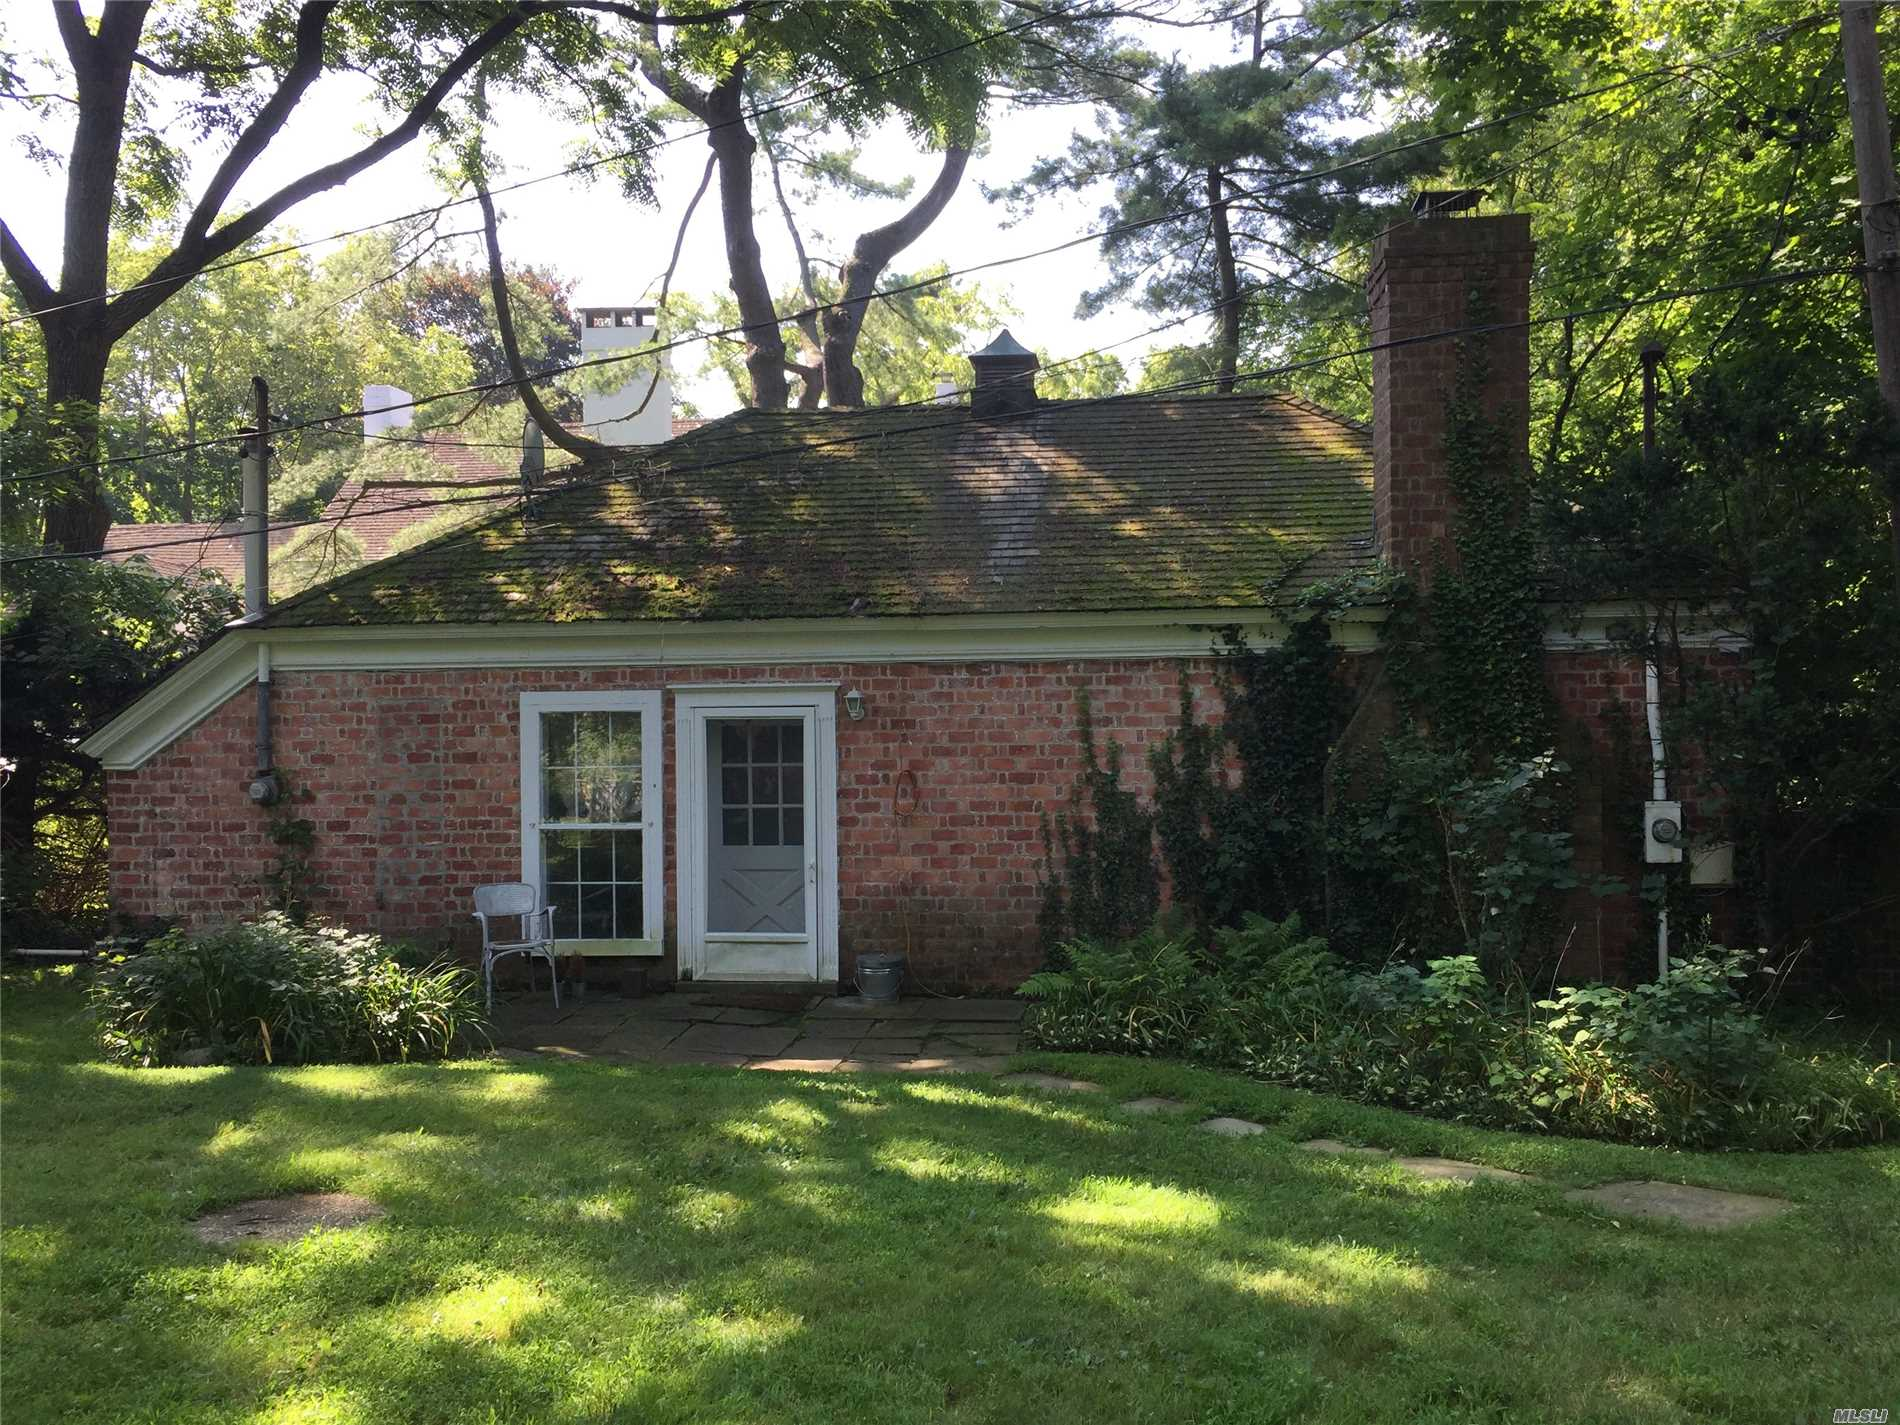 Brick Estate Cottage on private 1 acre. 1 BR, 1Ba., EIK washer/dryer. Mahogany living room with fireplace and built in floor to ceiling bookcases. Private access, parking. Groundskeeping included. No smoking, no pets.